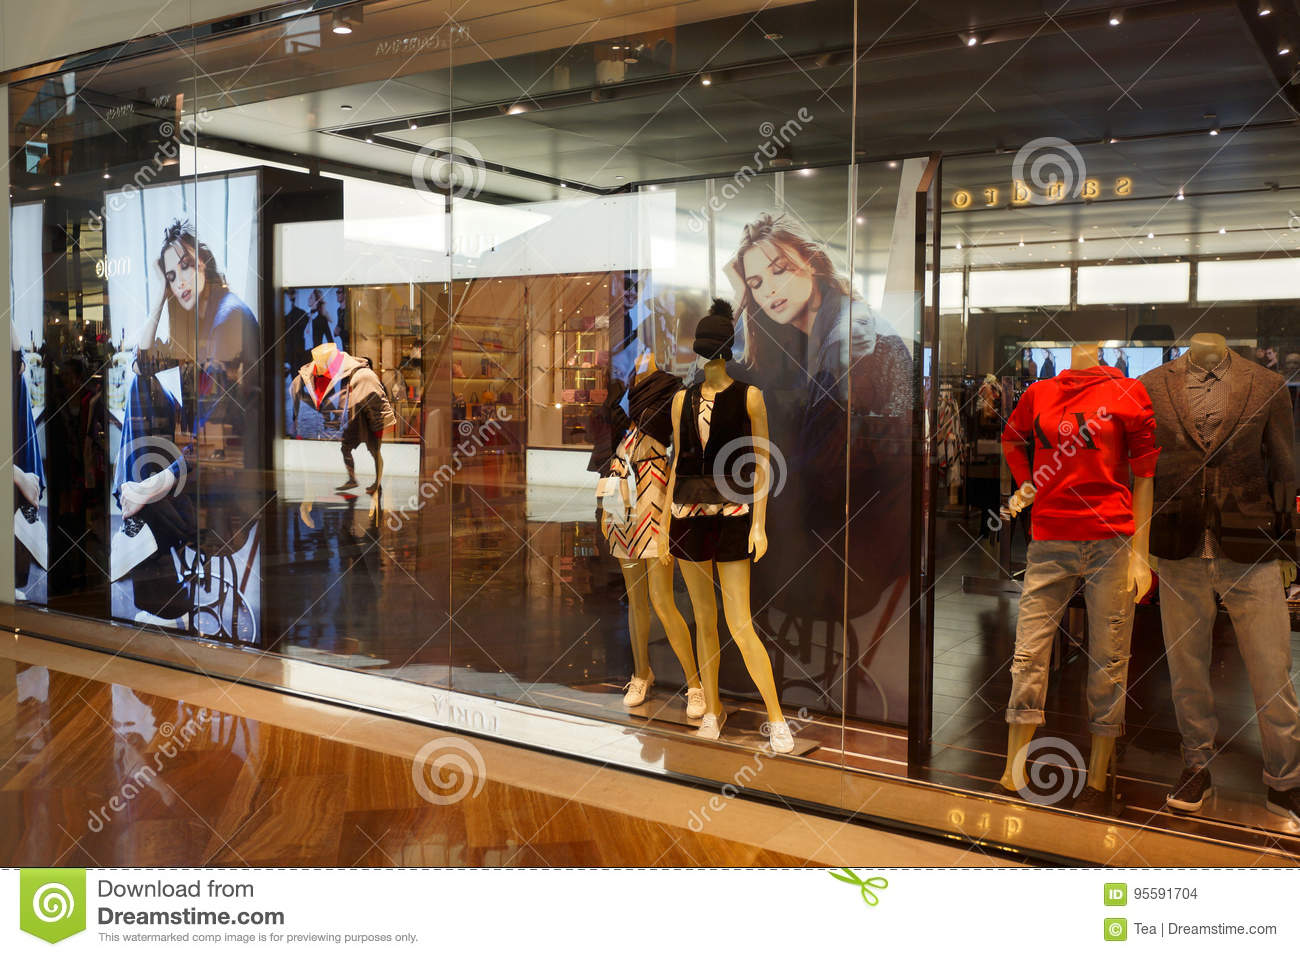 68a55c56f77e The Shoppes At Marina Bay Sands Editorial Stock Image - Image of ...